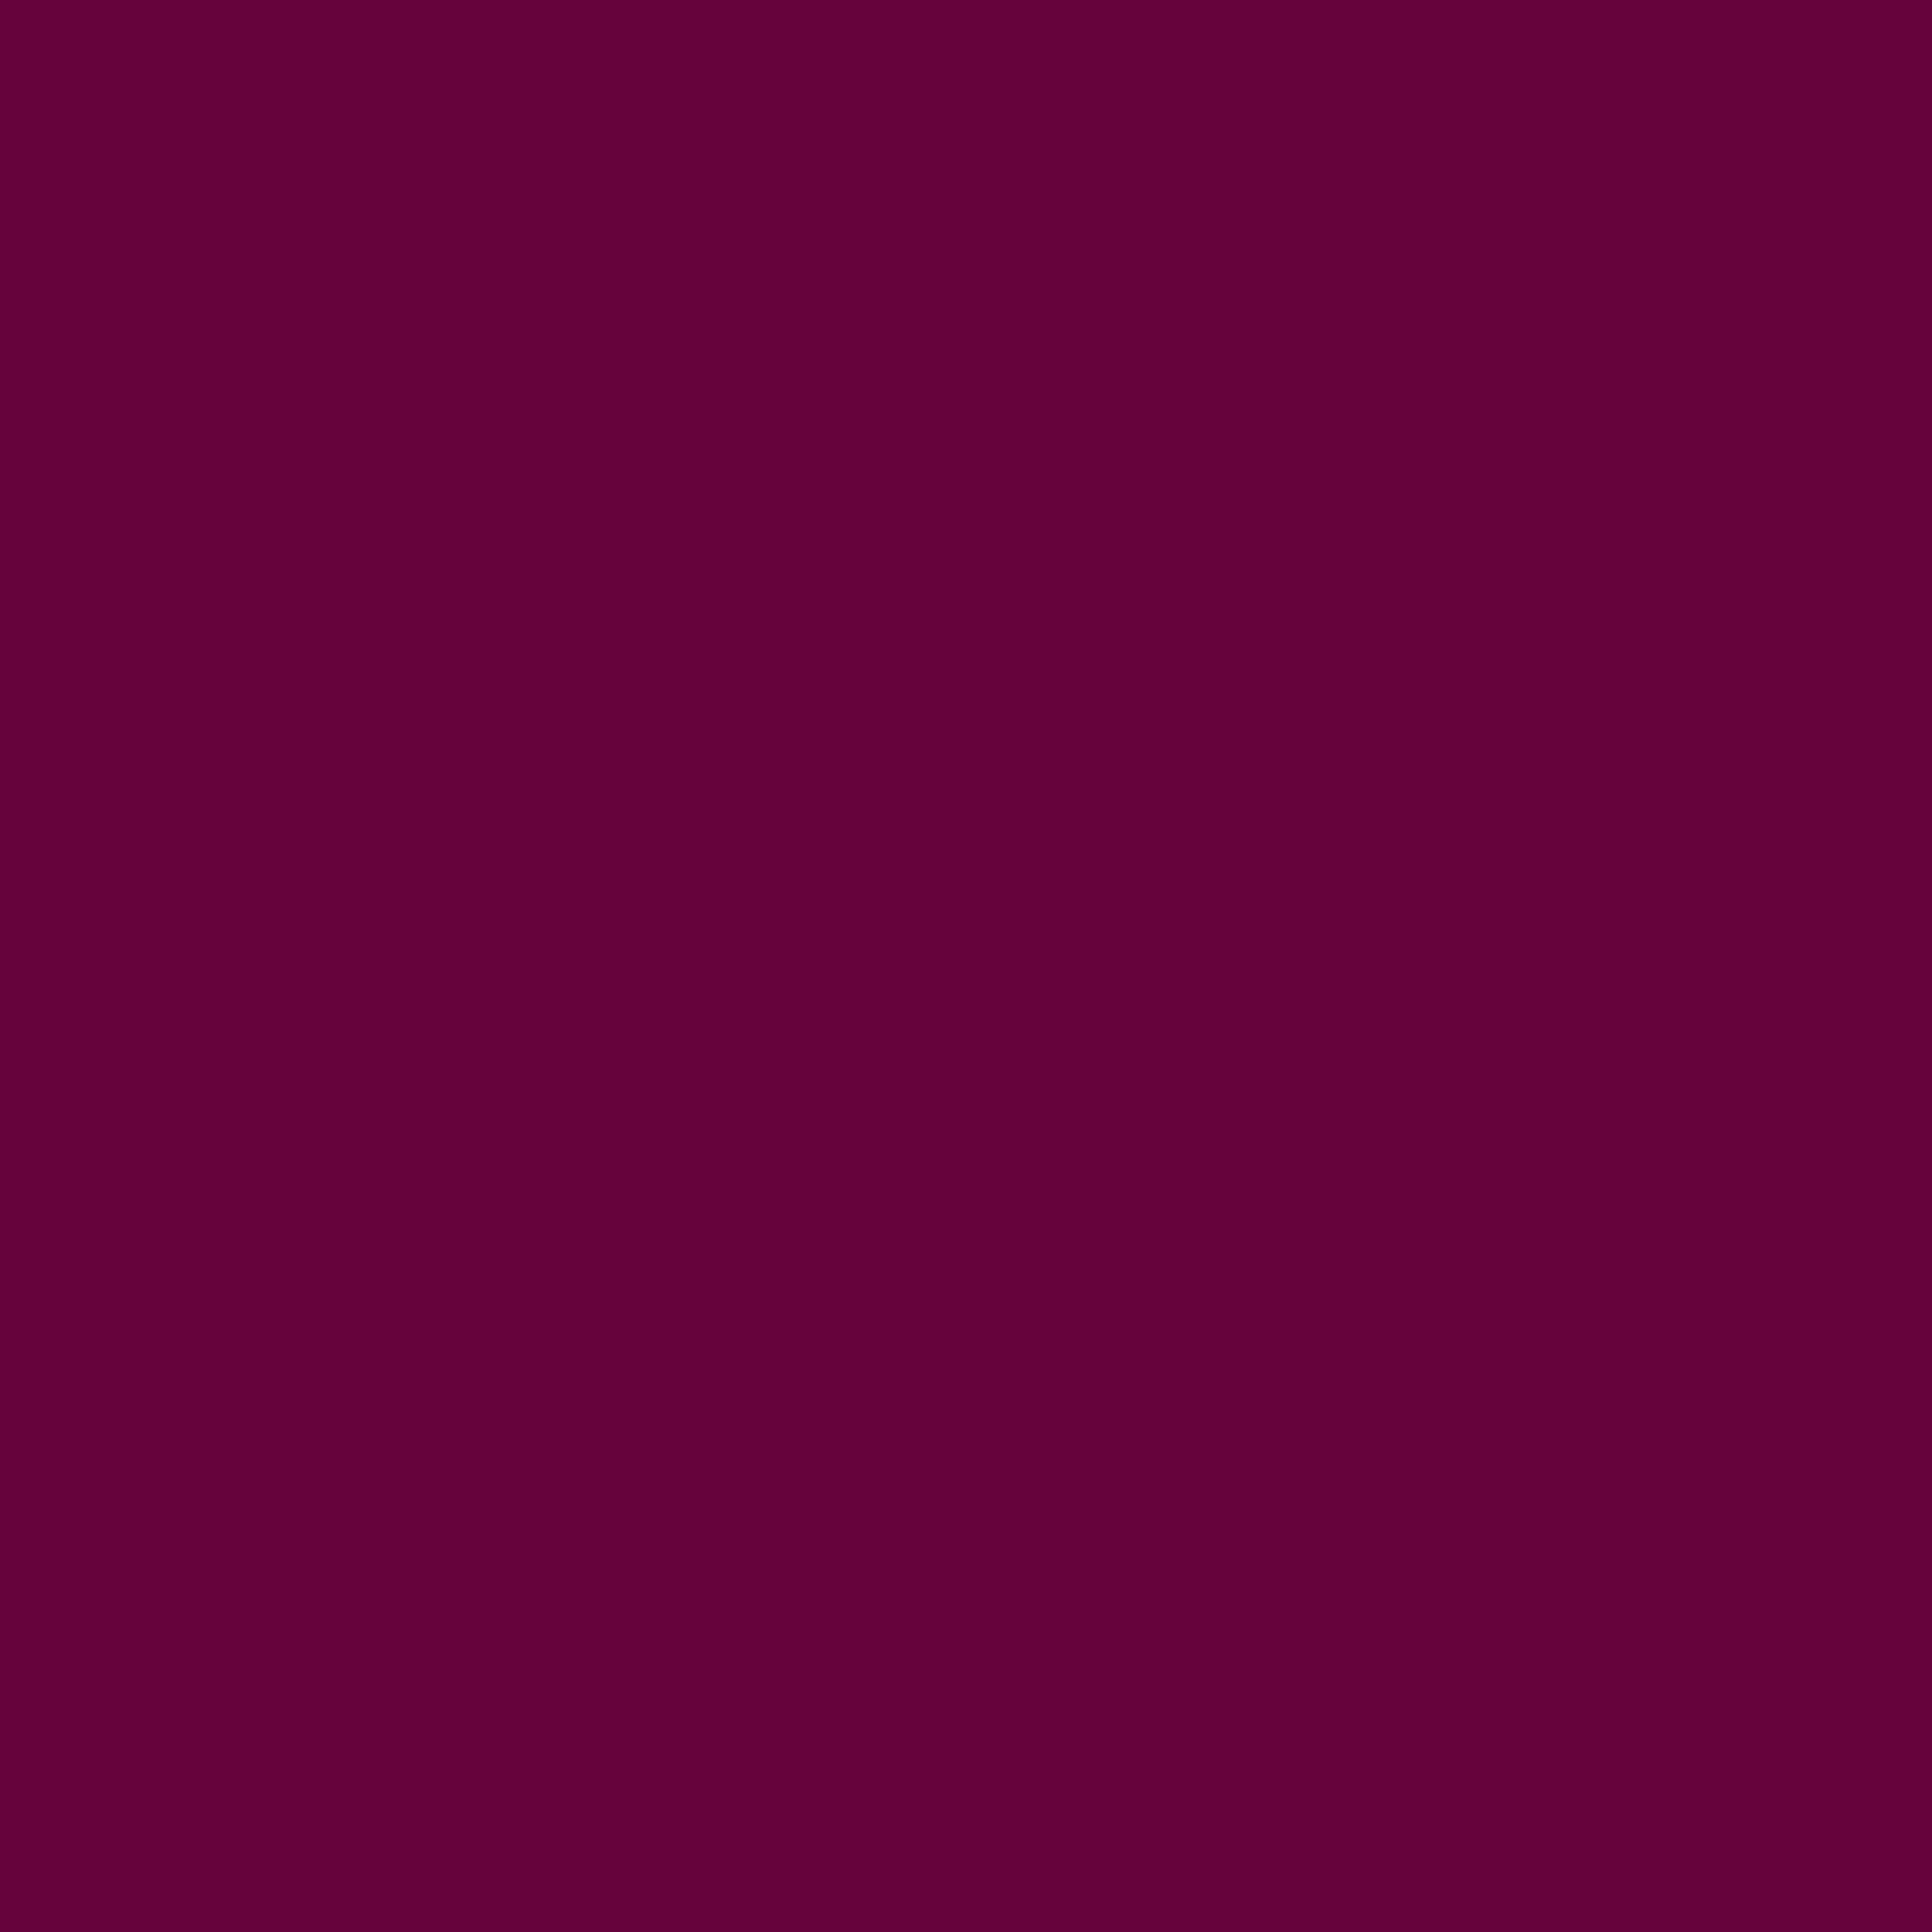 2732x2732 Tyrian Purple Solid Color Background